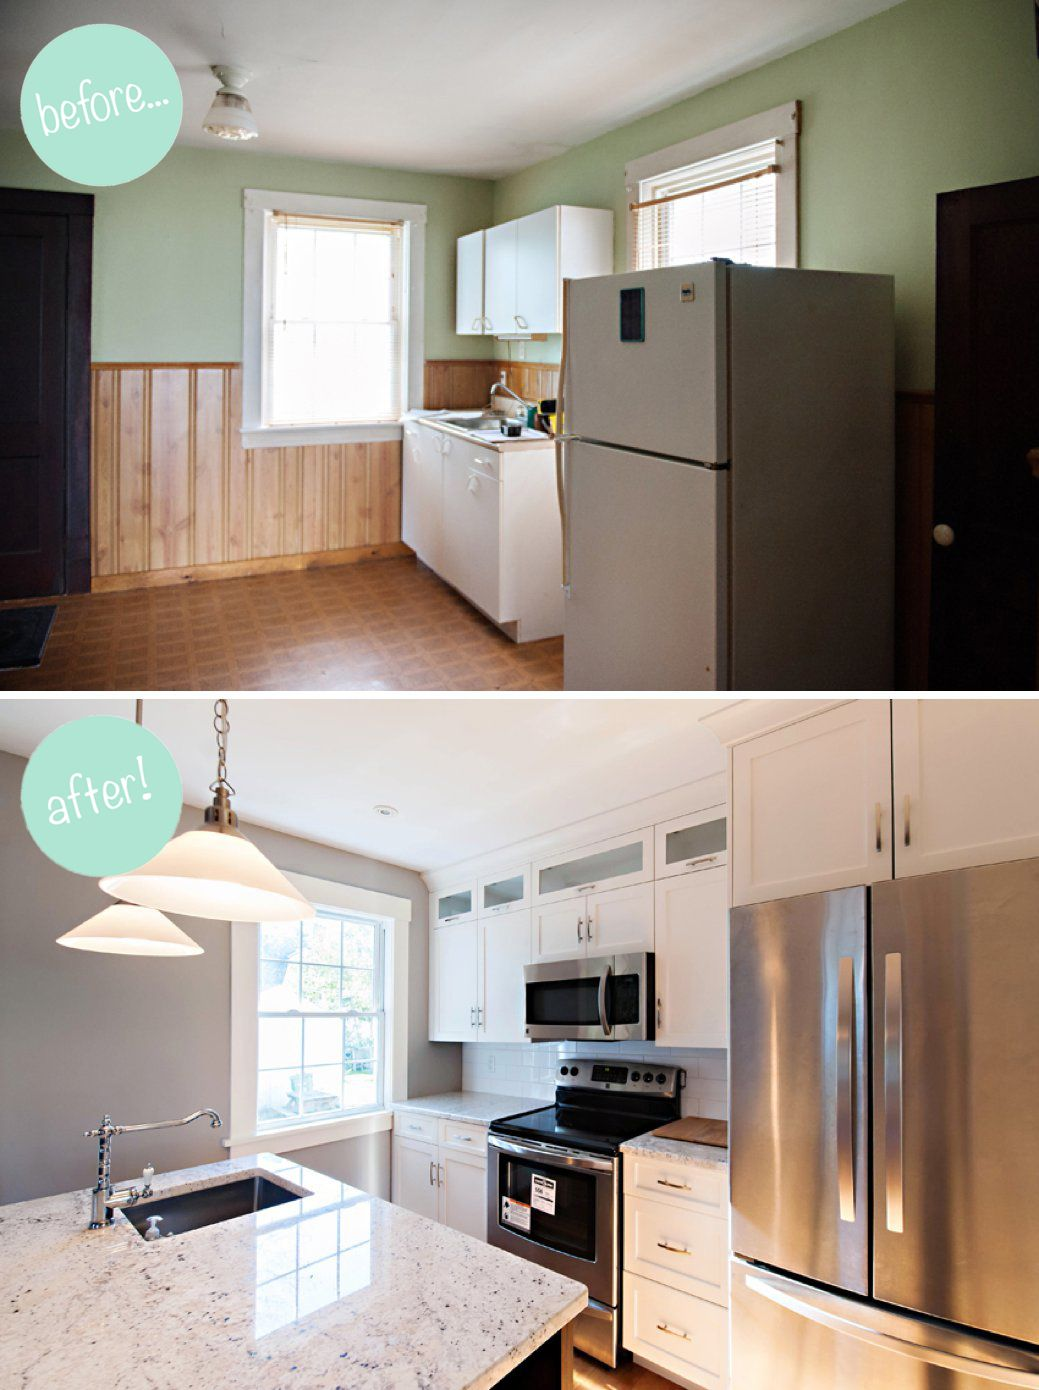 House Renovations (before & After)